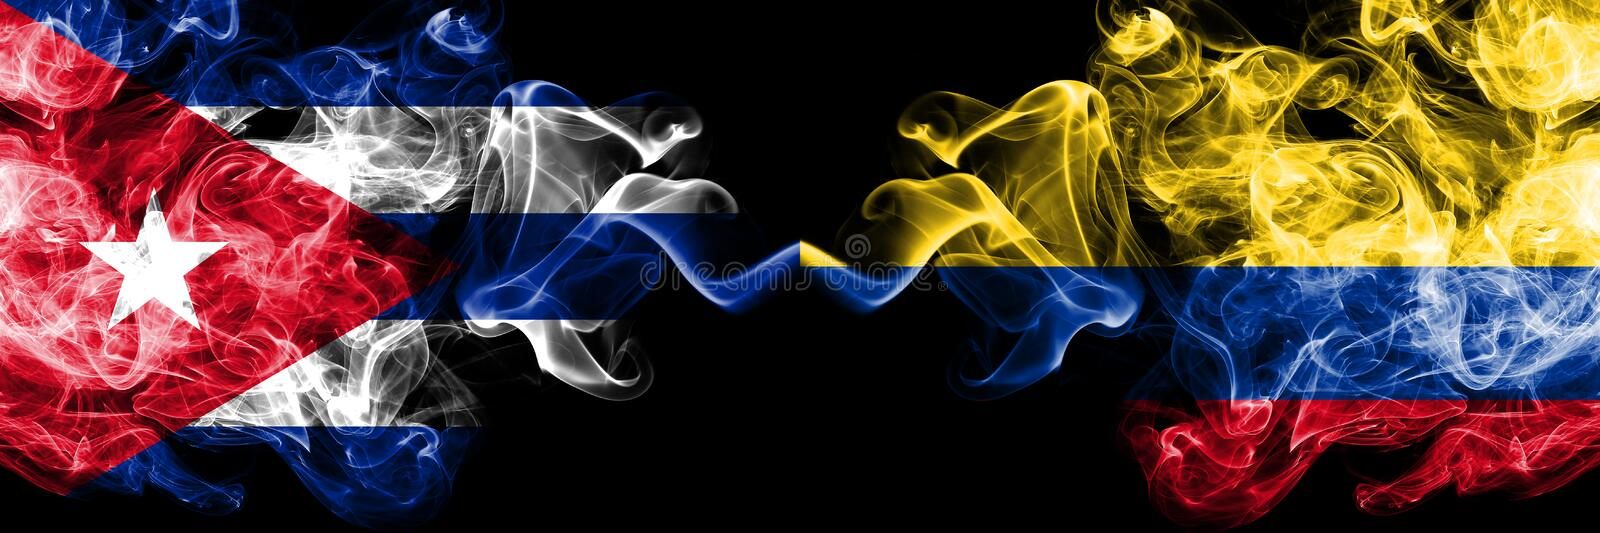 Cuba, Cuban vs Colombia, Colombian smoky mystic flags placed side by side. Thick colored silky travel abstract smokes banners.  vector illustration